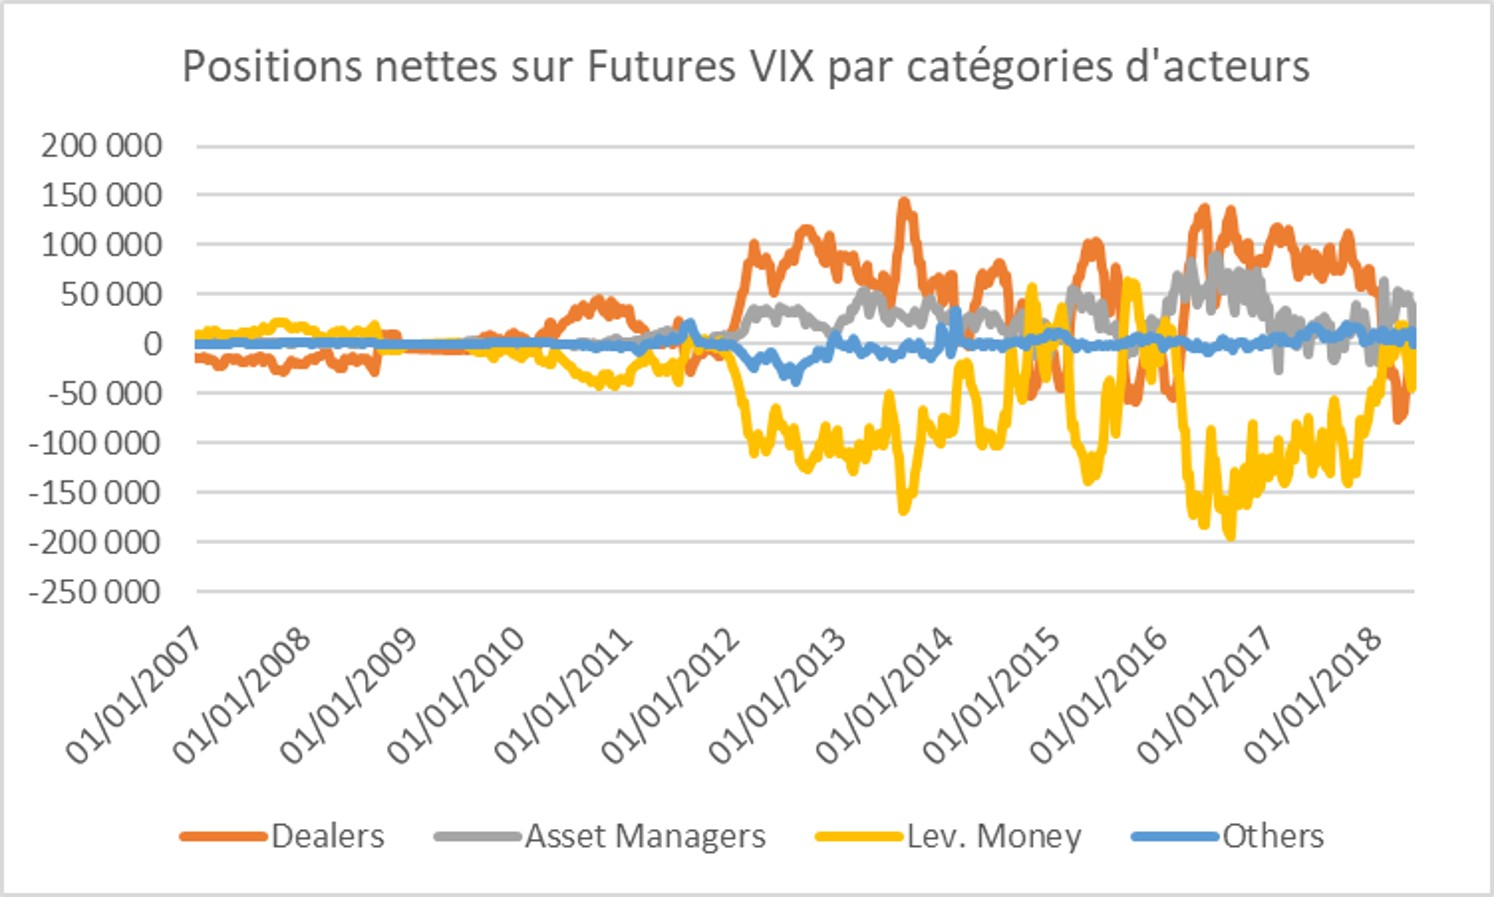 https://www.devenir-rentier.fr/uploads/12850_2018-05-28_vix_net_positions.jpg